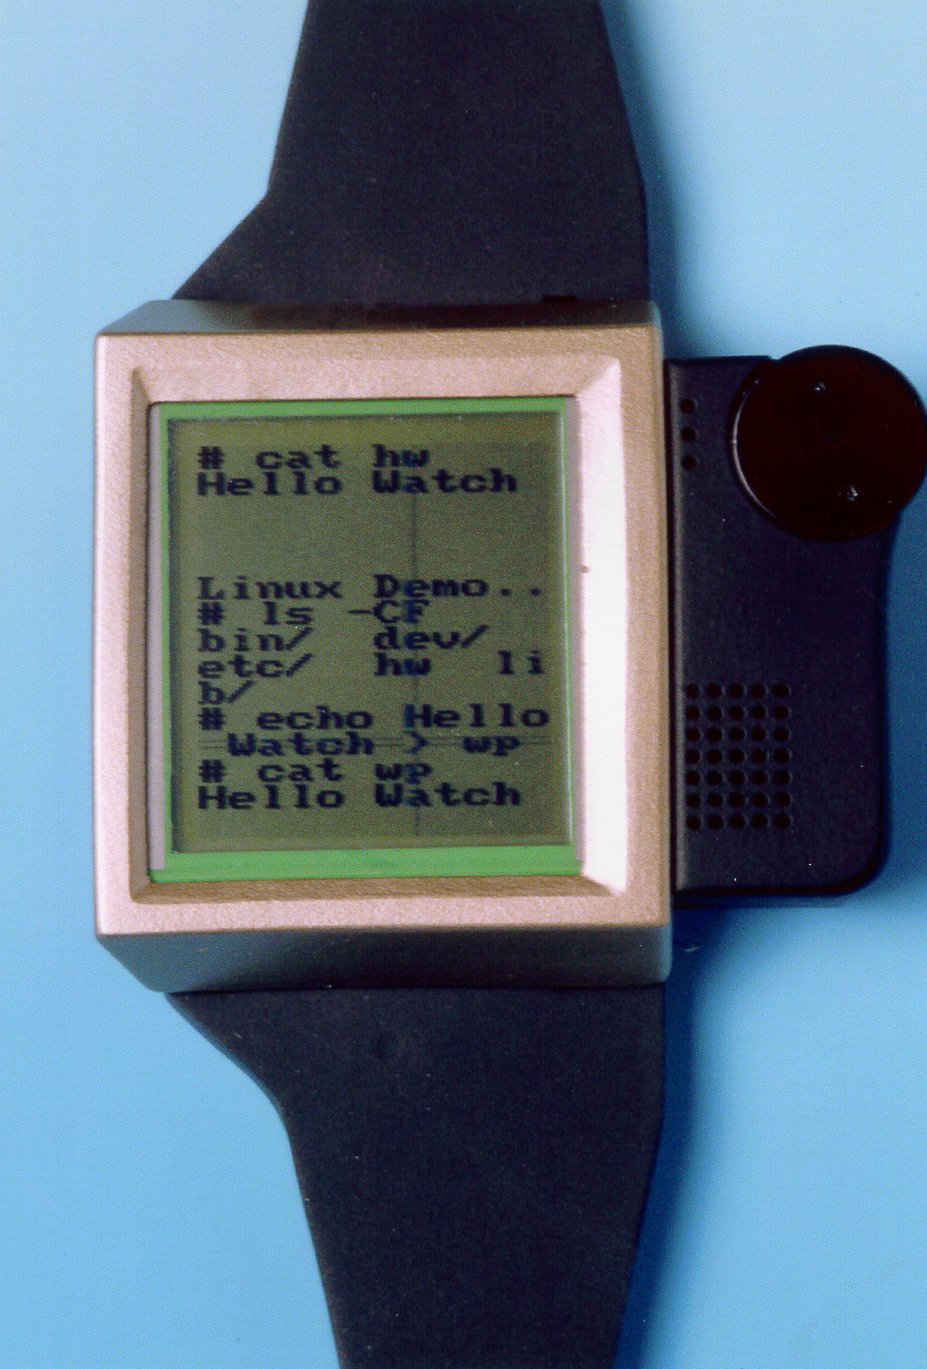 Bowyer insider citizen watch and ibm research collaboration for Linux watch